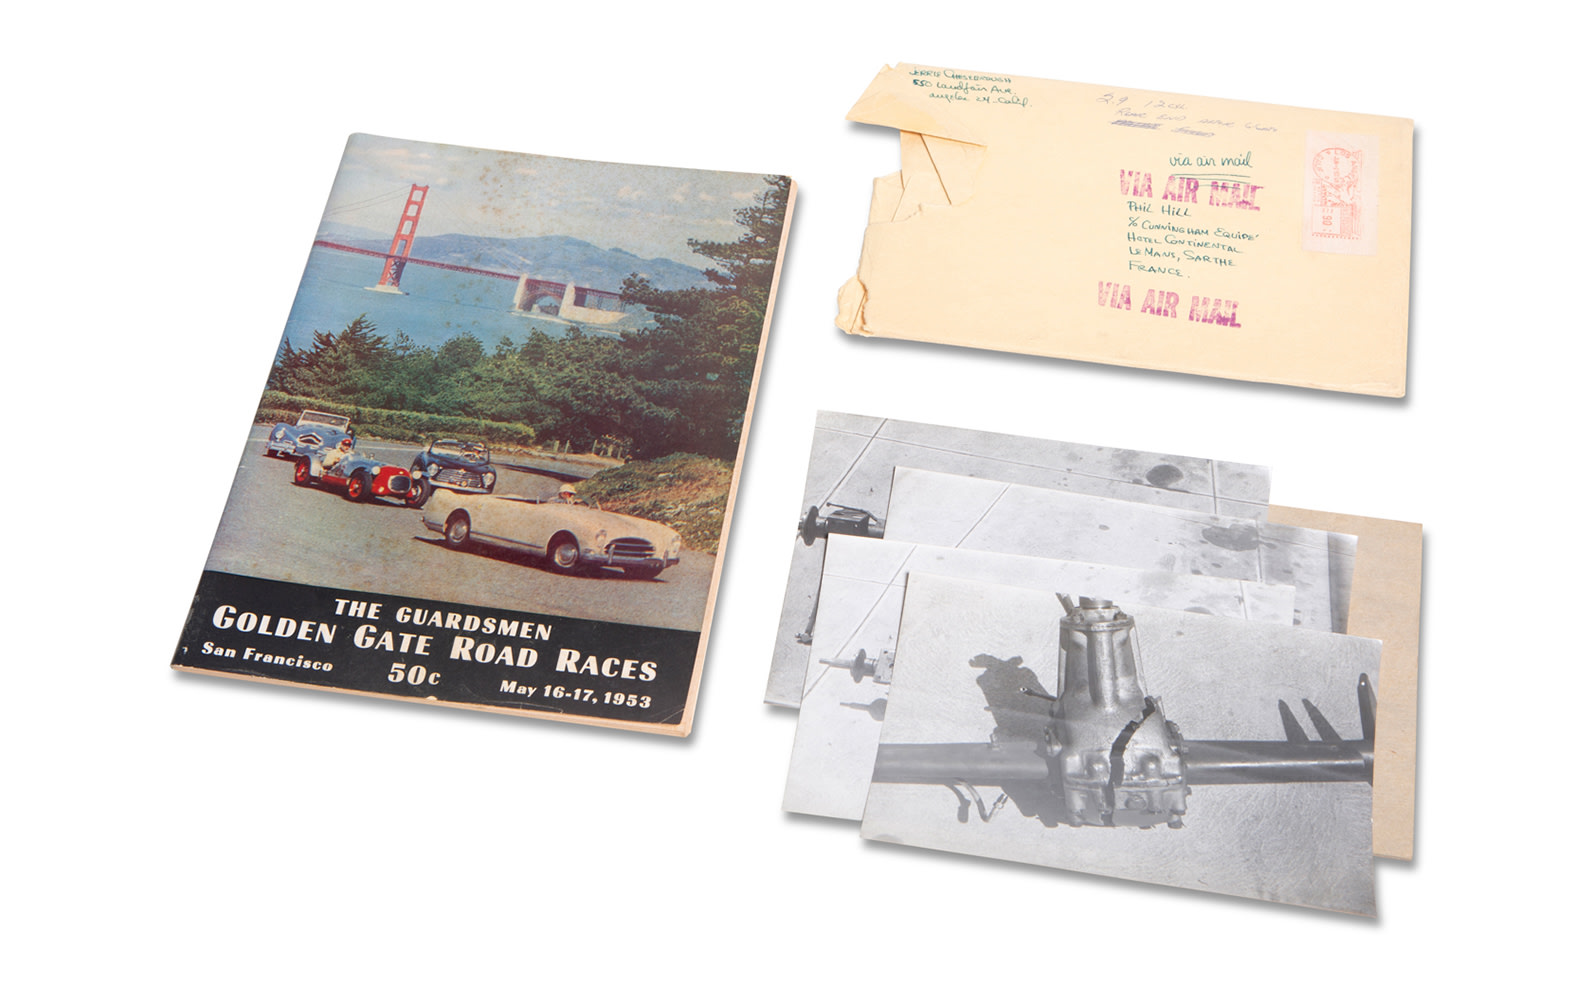 1953 Golden Gate Road Races Official Program and Photographs